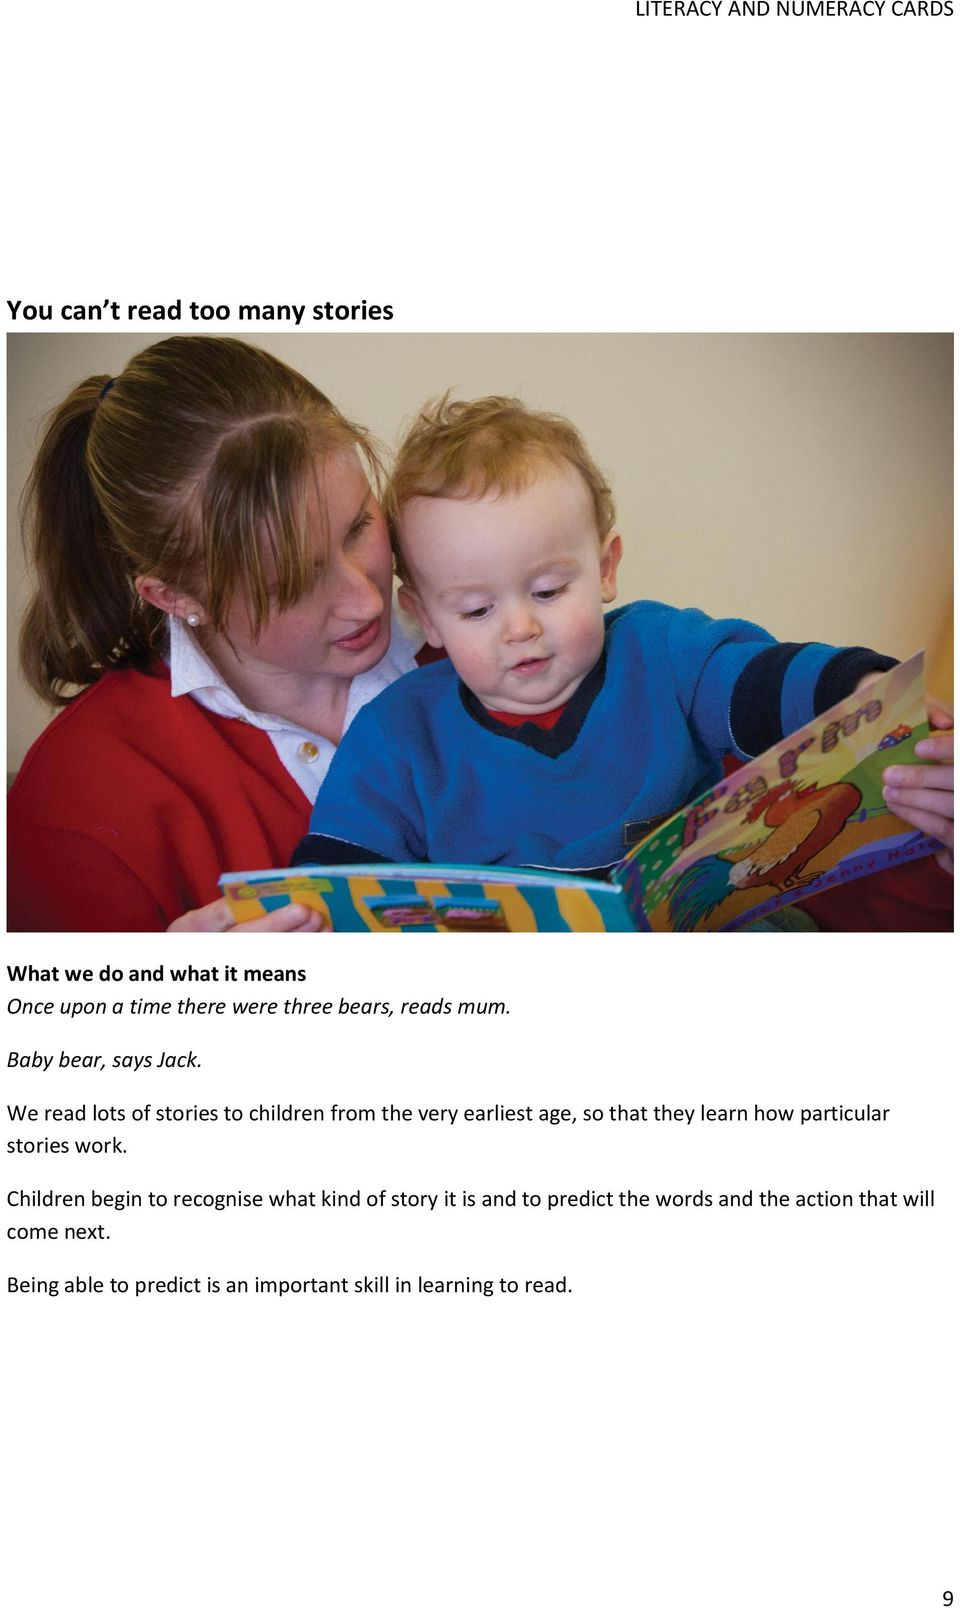 We read lots of stories to children from the very earliest age, so that they learn how particular